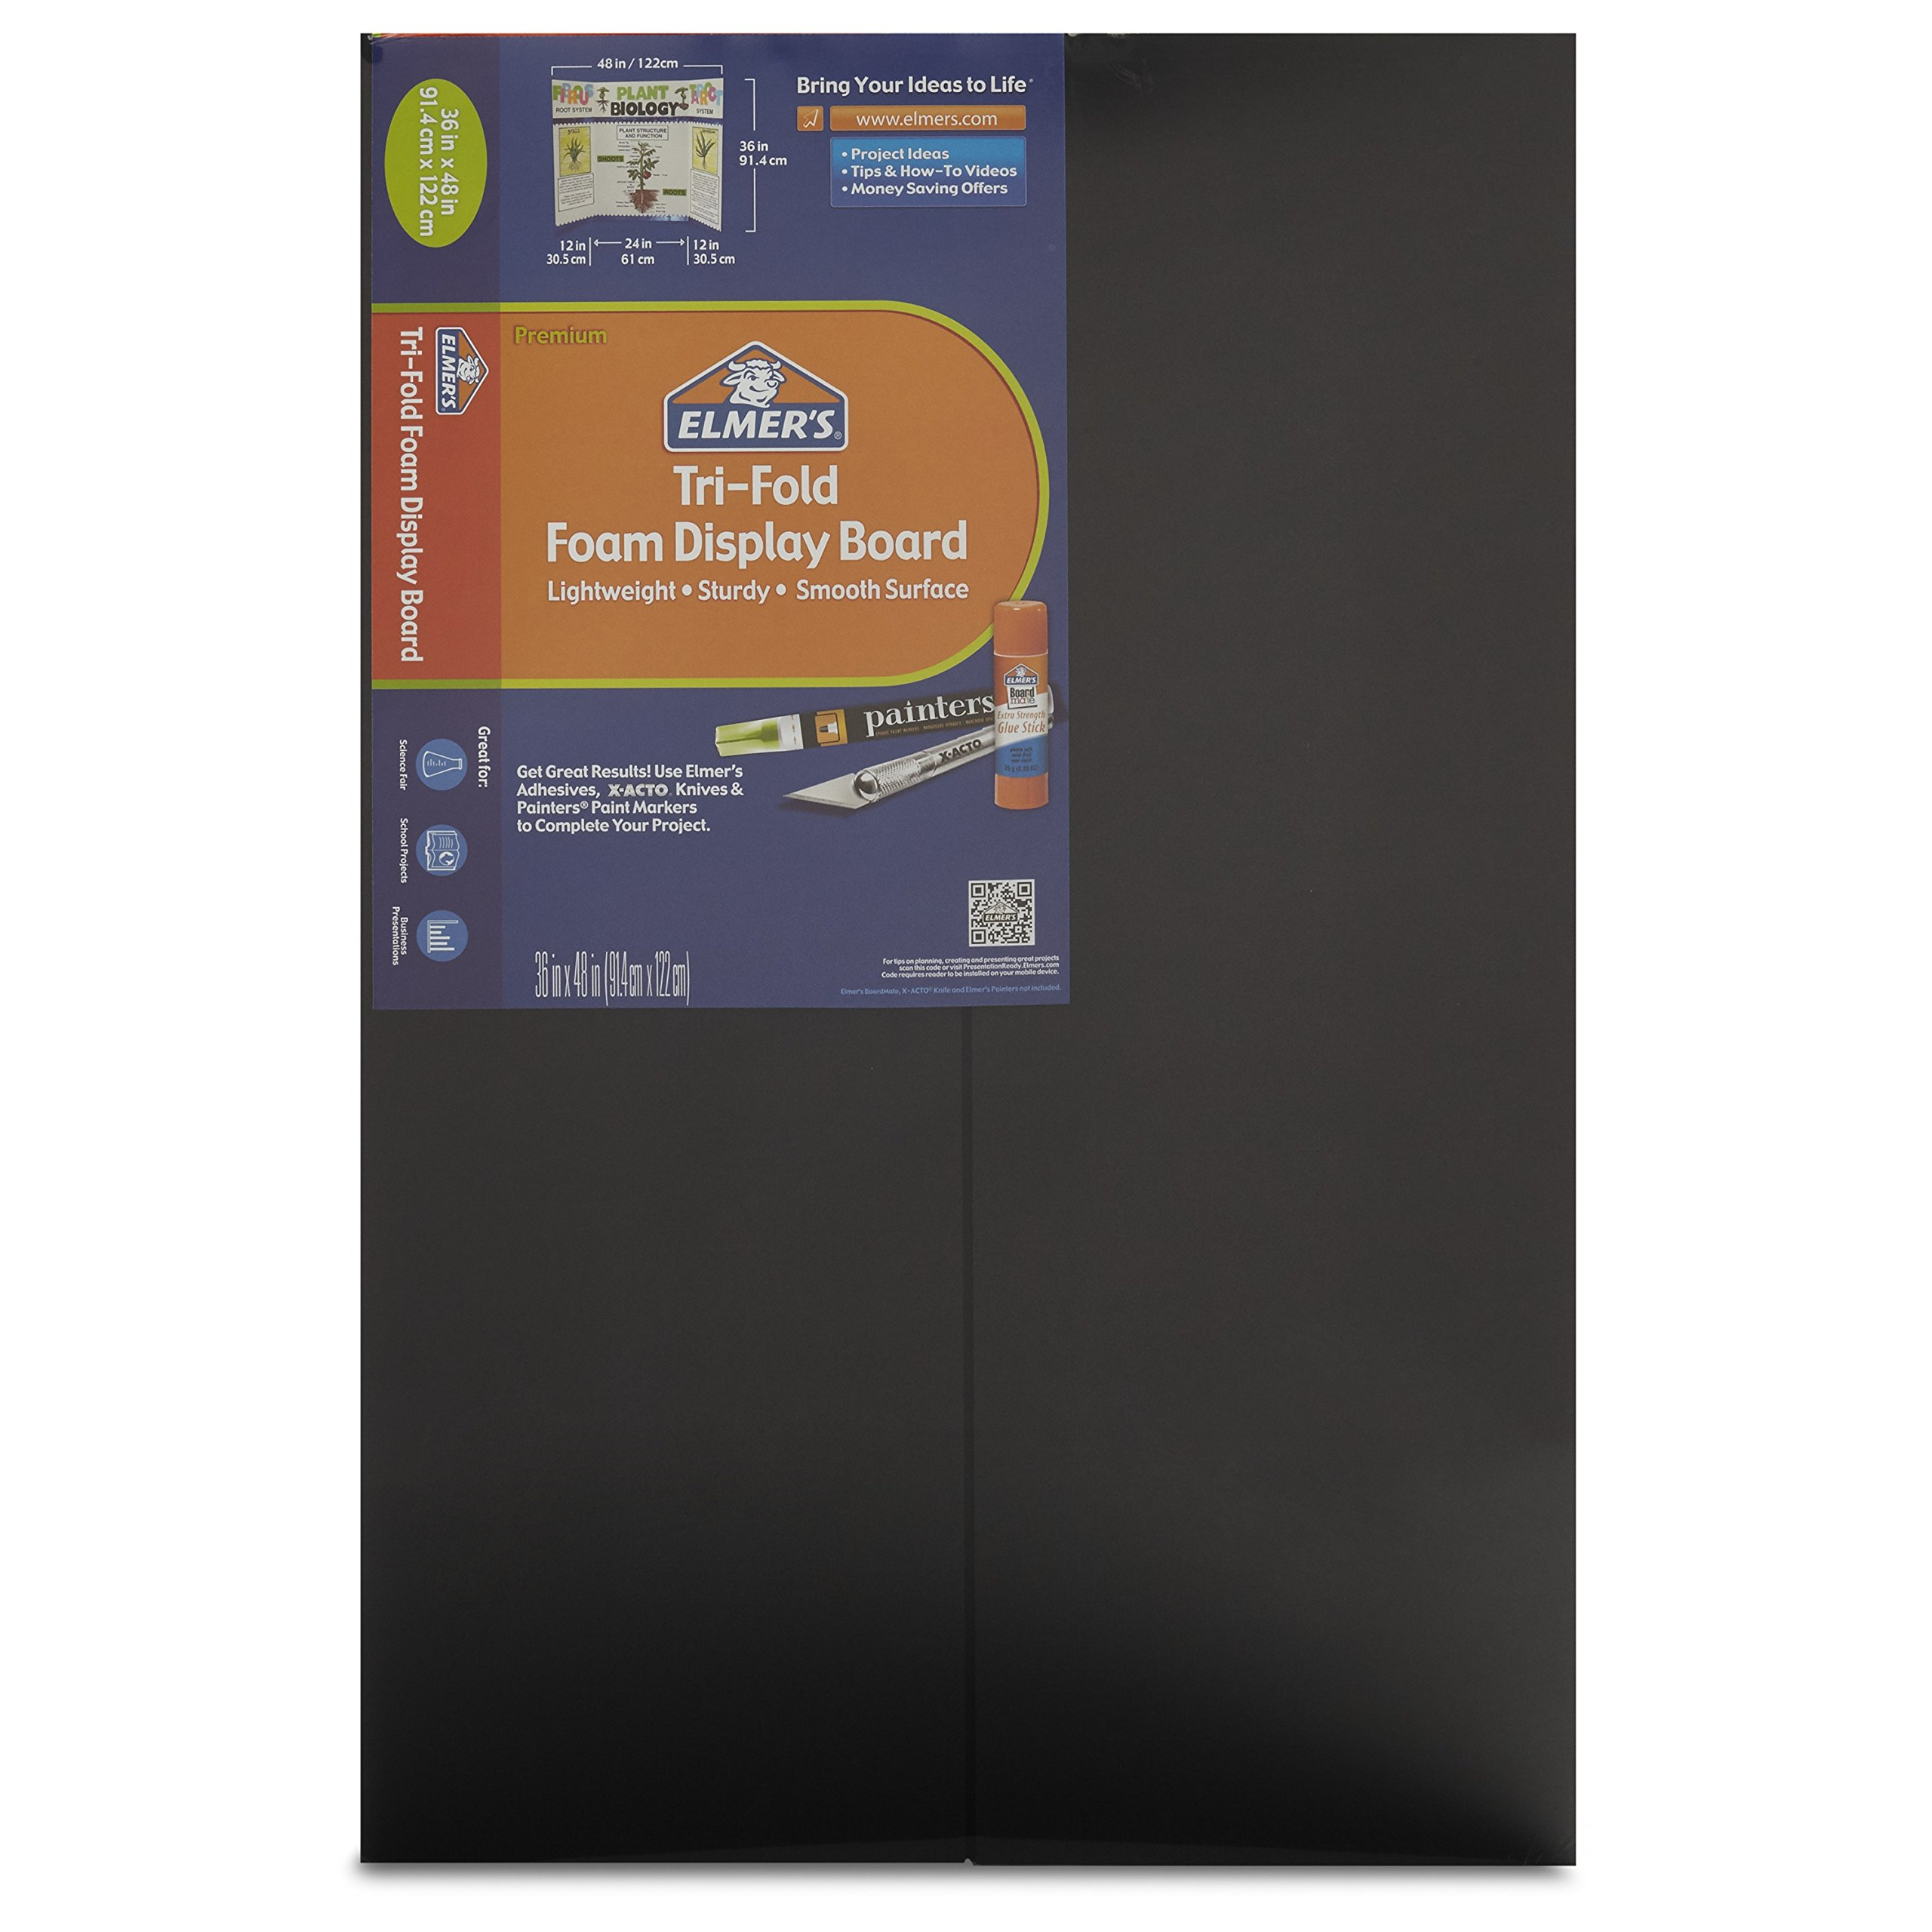 Elmer's Tri-Fold Premium Foam Display Board, Black, 36x48 Inch (Pack of 12)